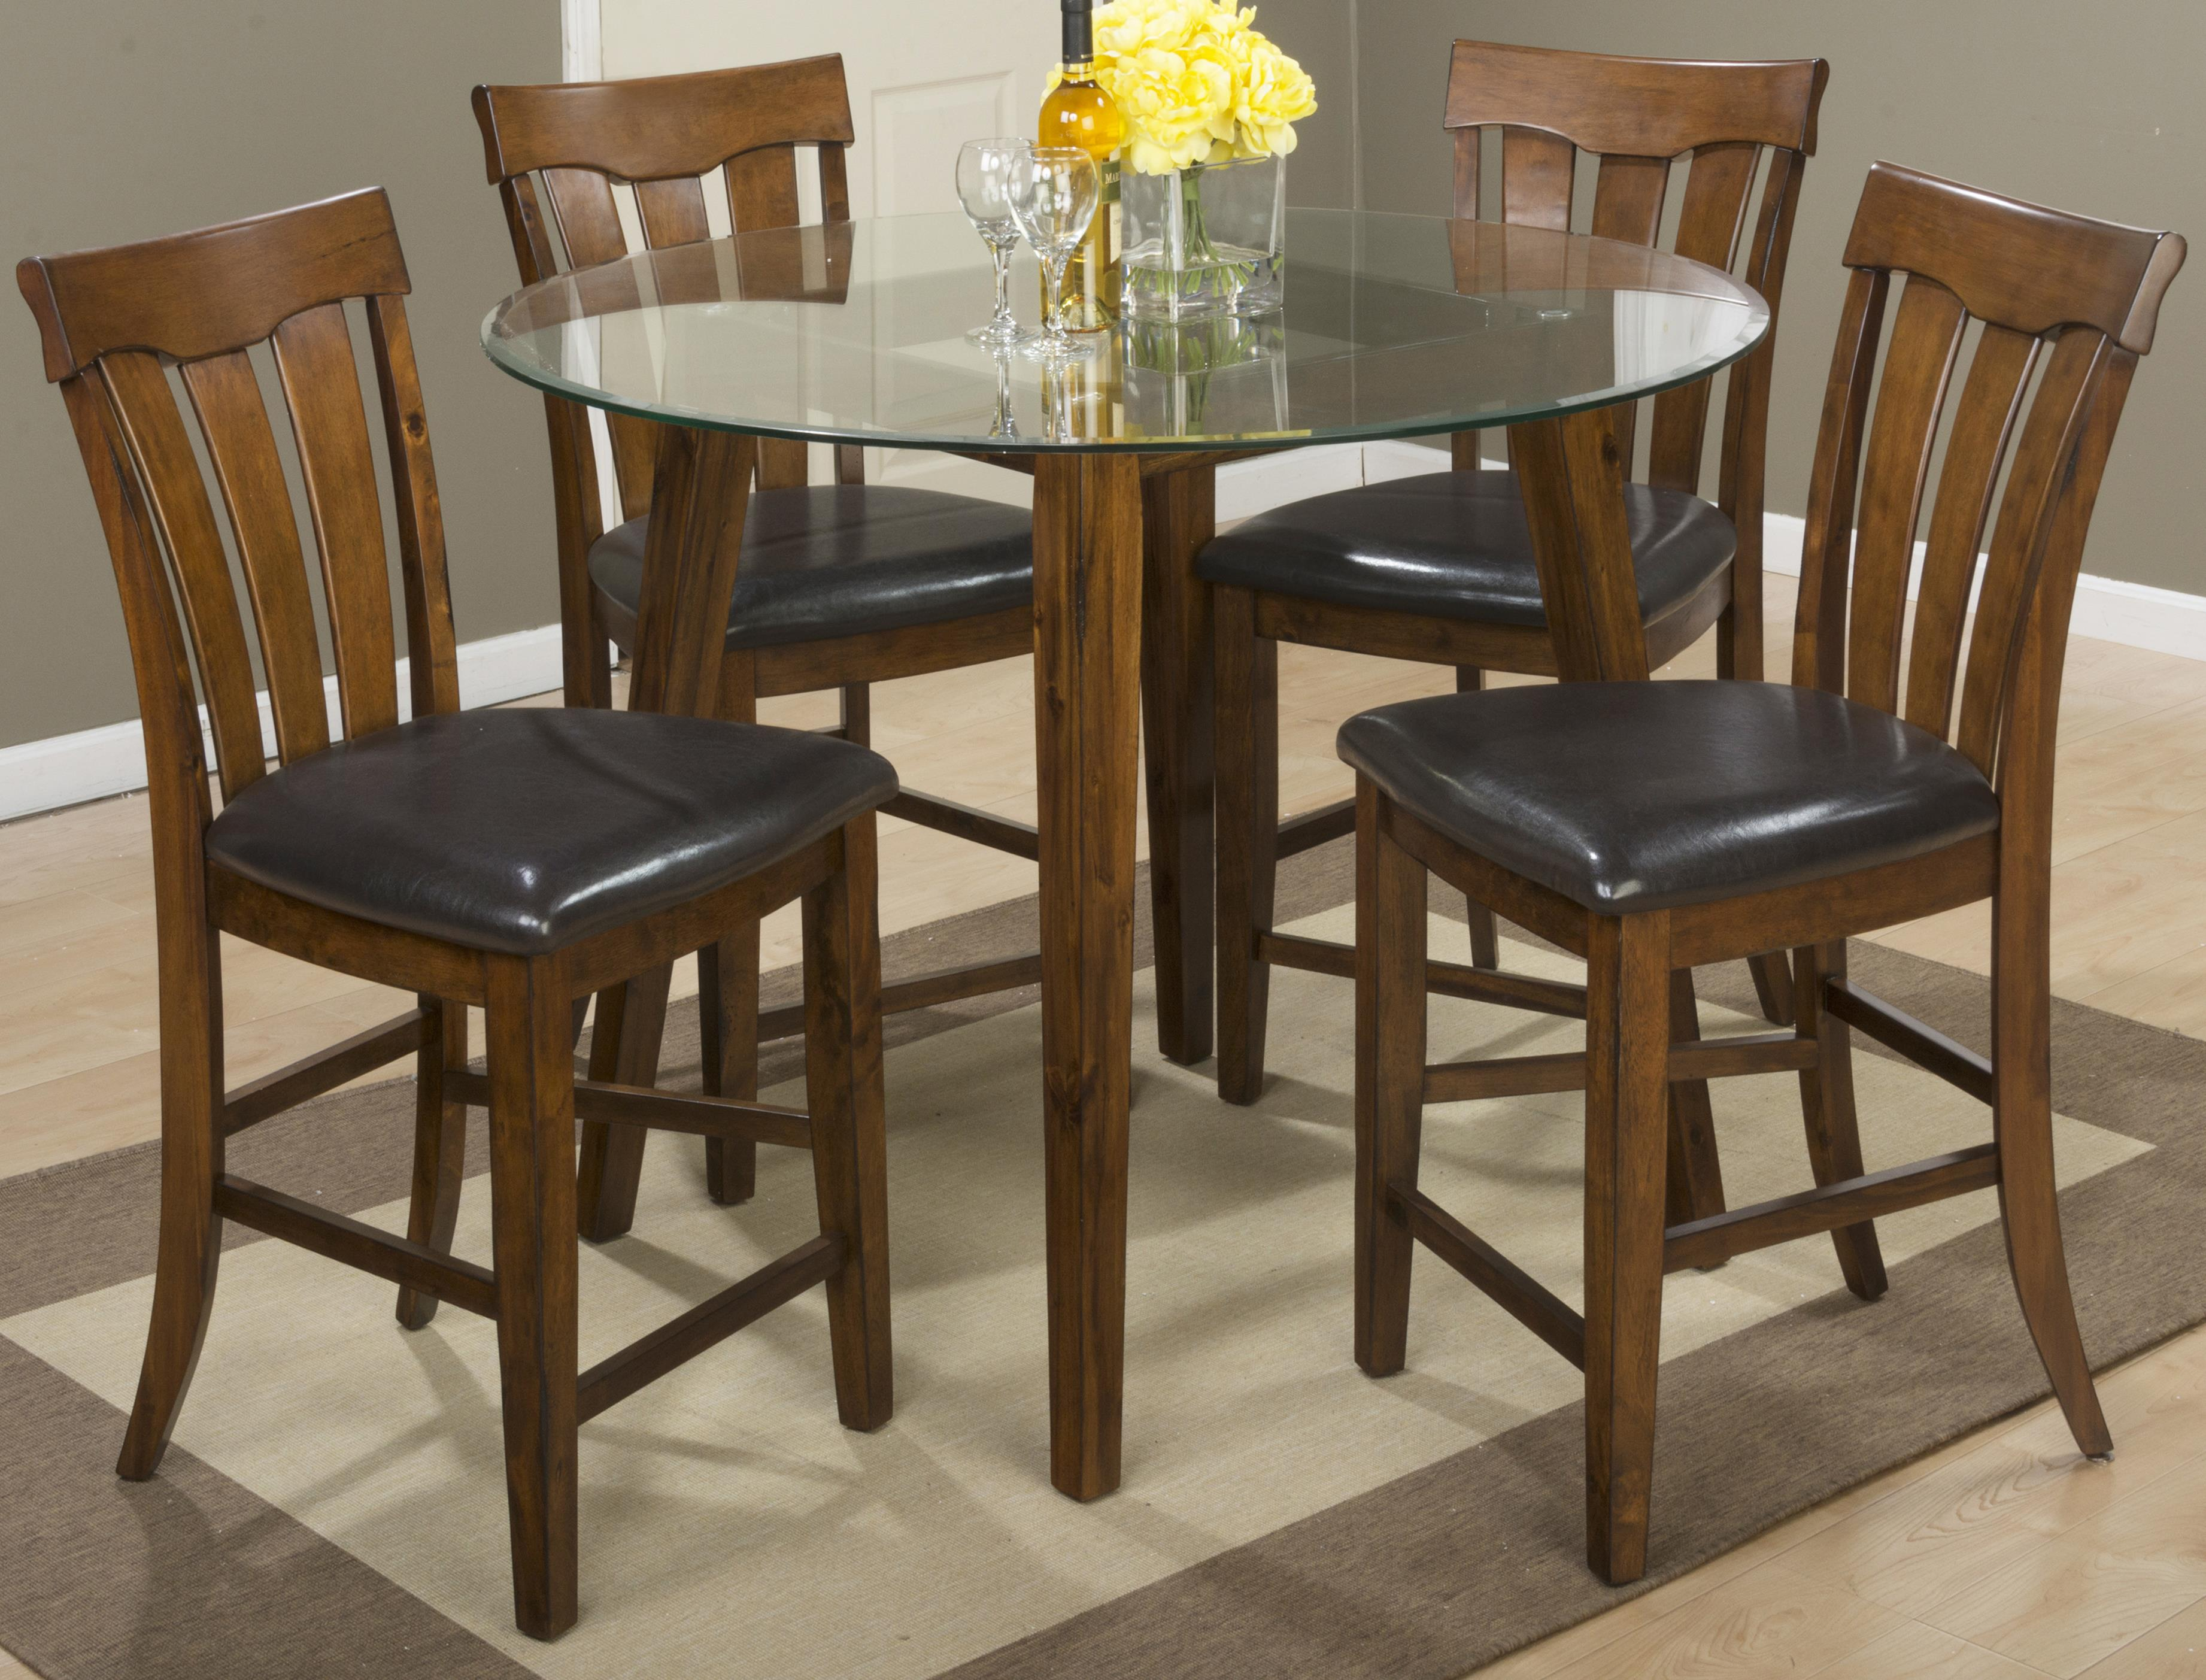 jofran plantation 48 round counter height table and stool set boulevard home furnishings. Black Bedroom Furniture Sets. Home Design Ideas